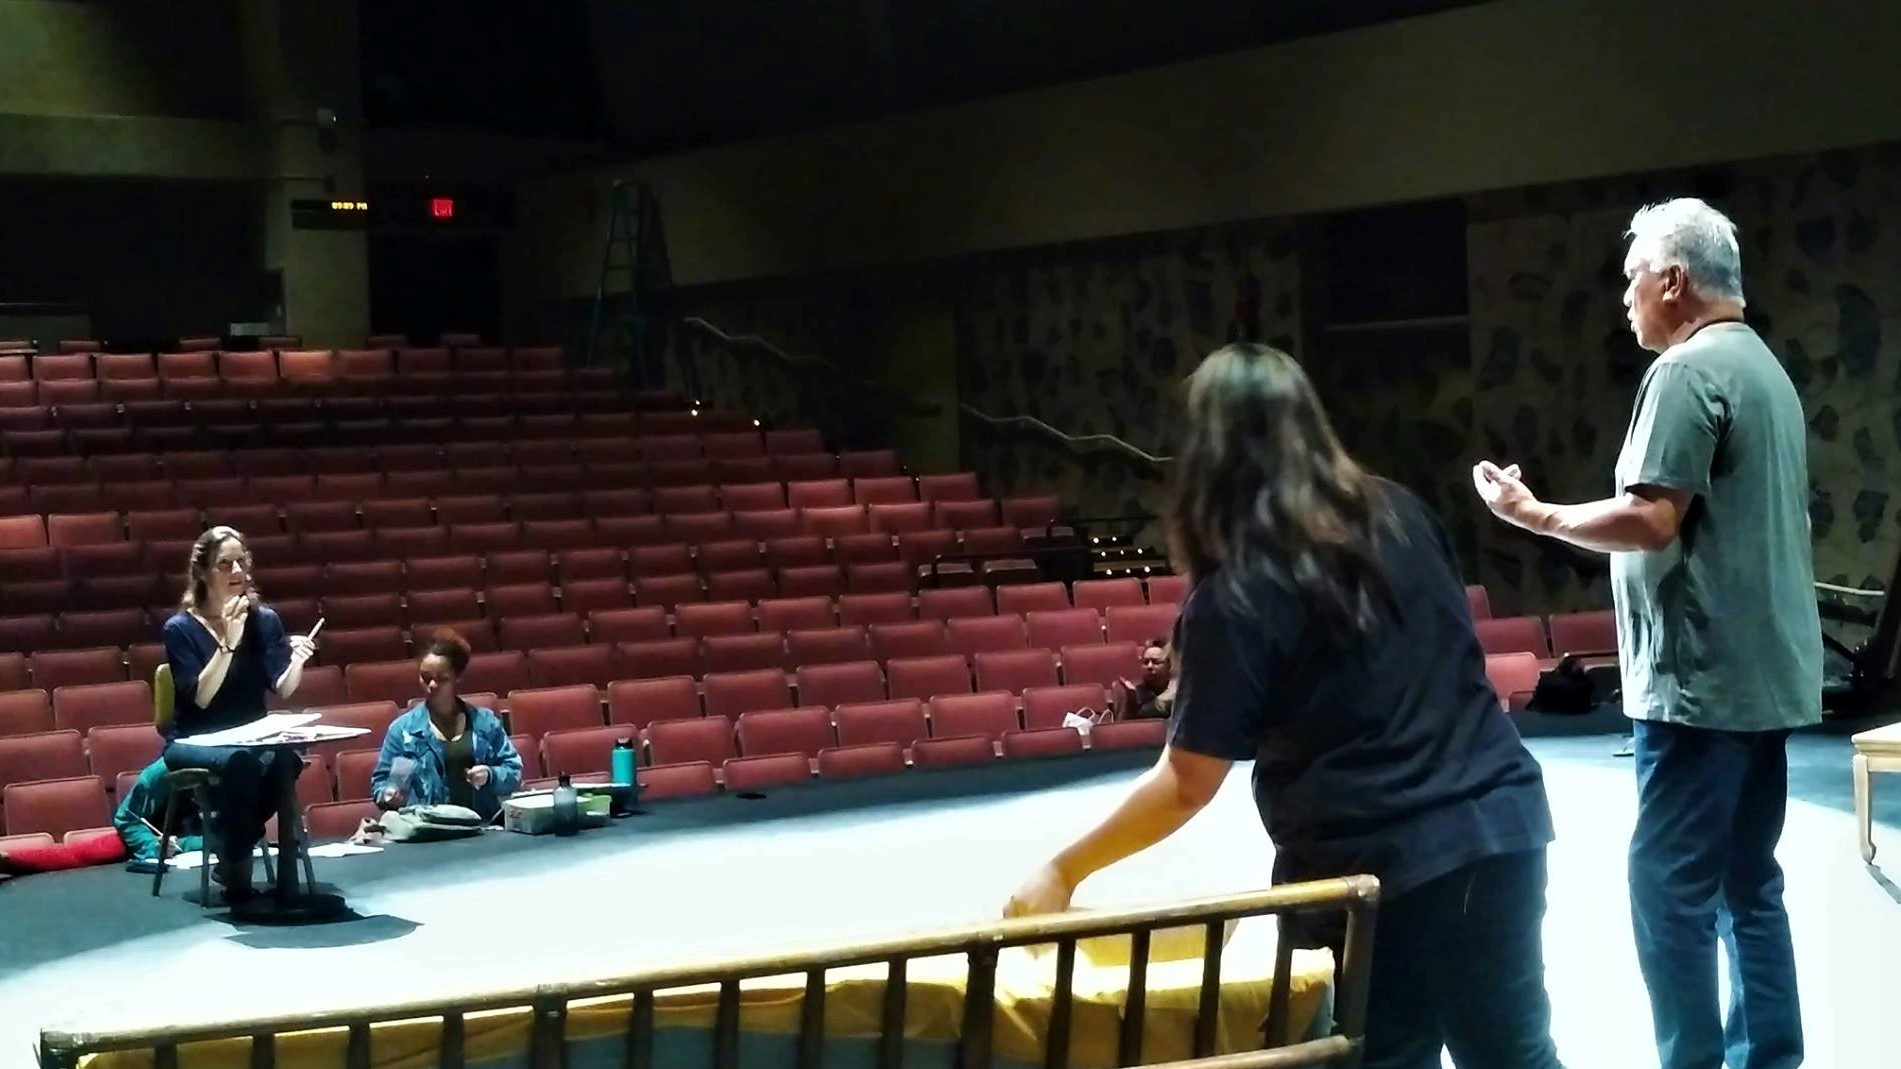 A left is director Justina Mattos giving two actors direction on the stage. Background is empty tiered theatre seating.